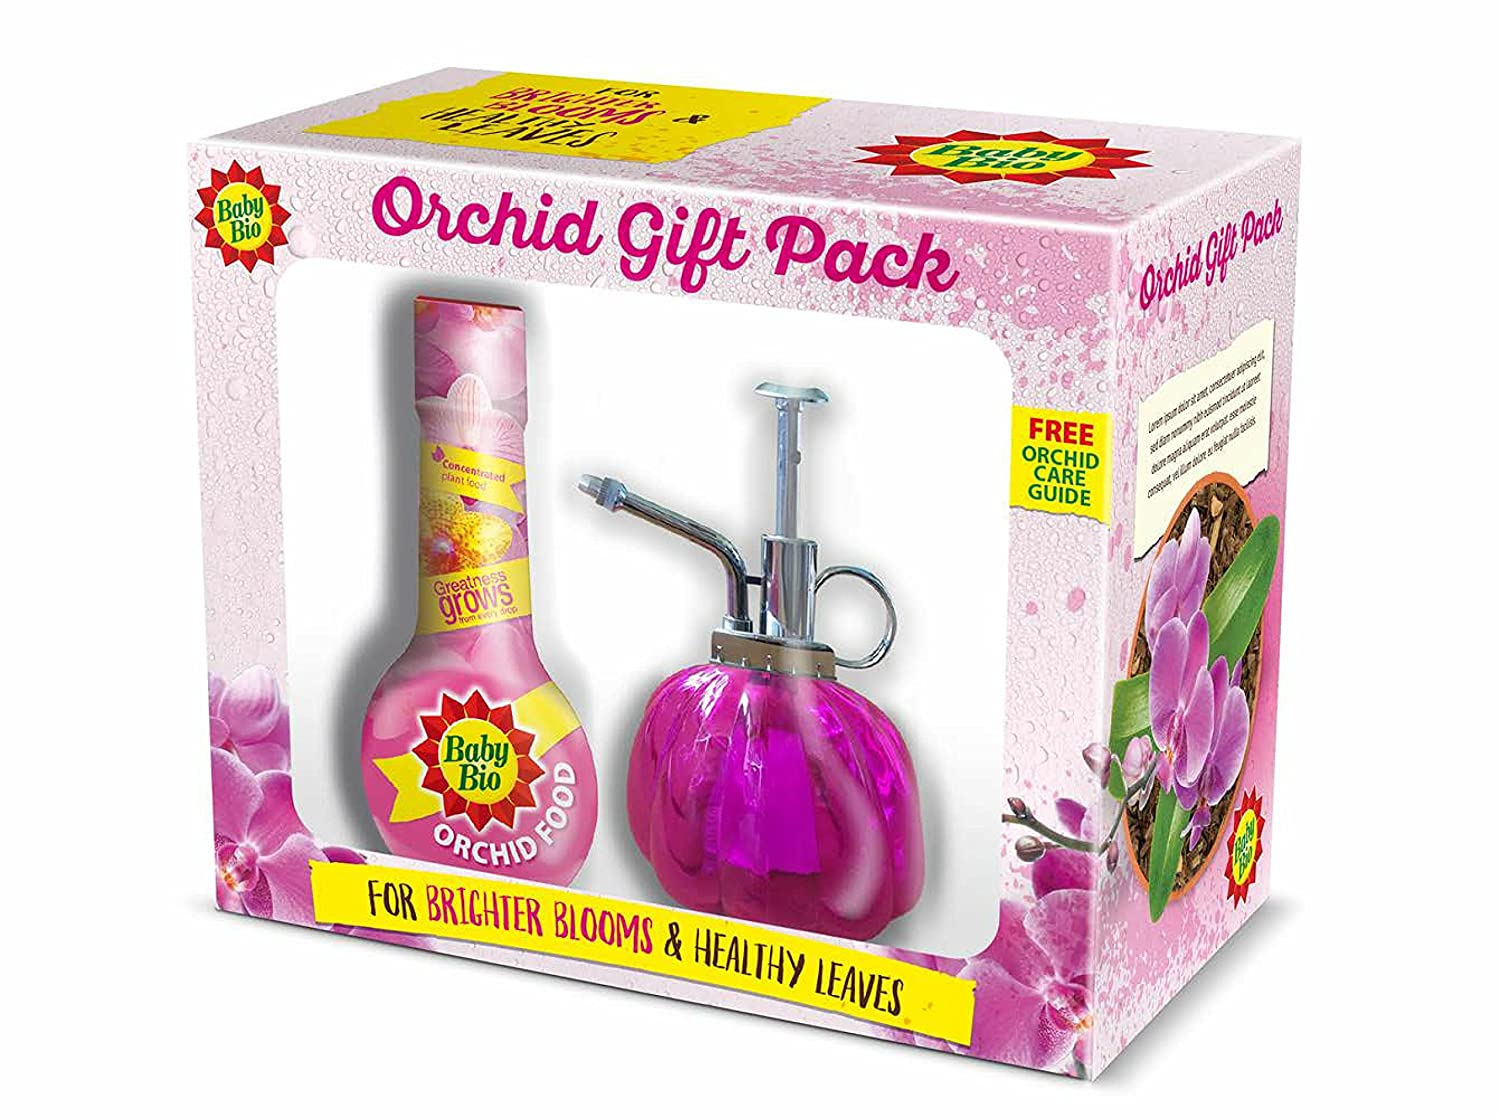 Baby Bio Orchid Gift Pack SBM Life Science 86600067